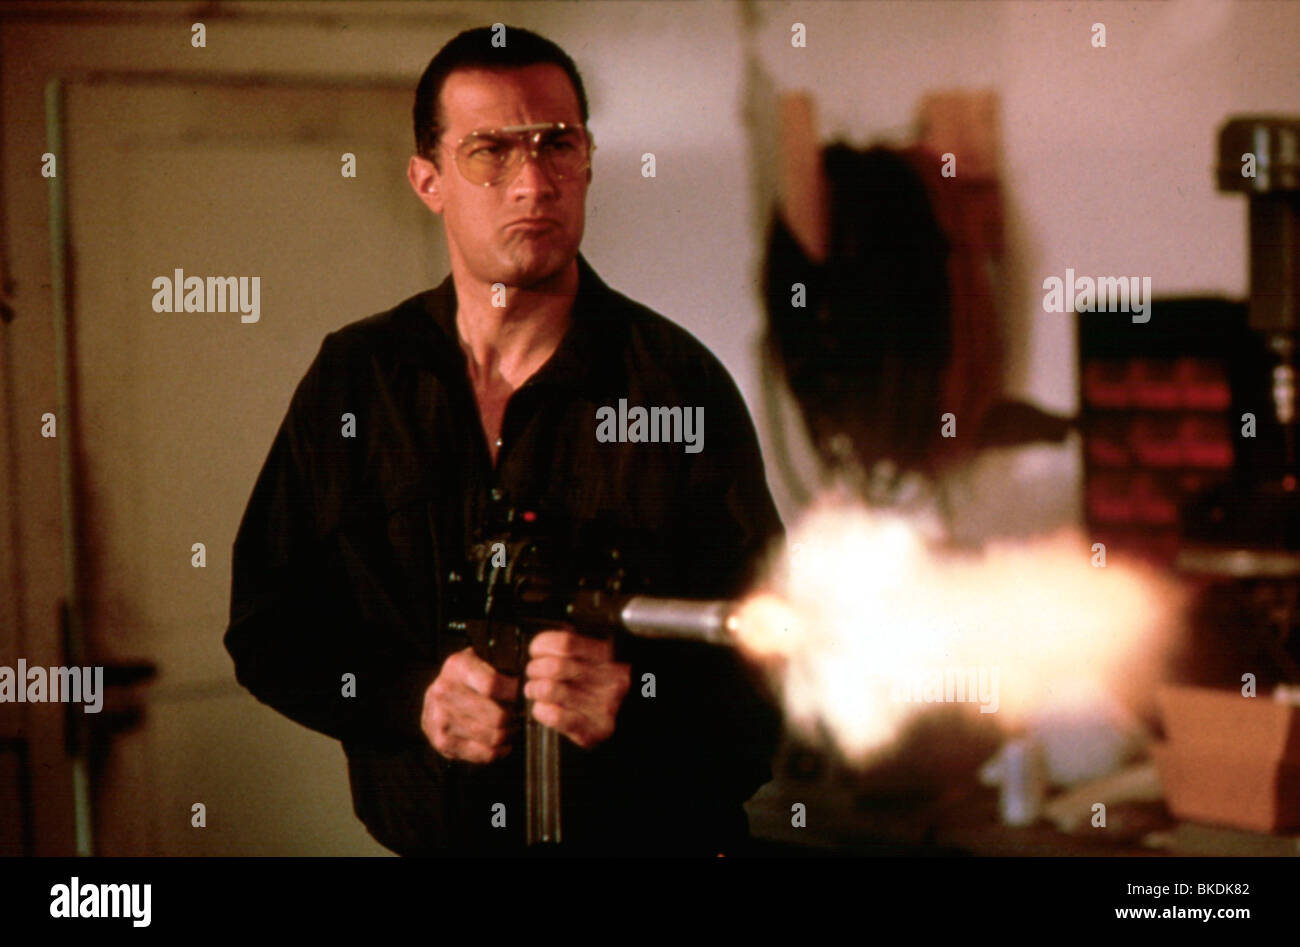 MARKED FOR DEATH (1990) STEVEN SEAGAL MFDH 013 - Stock Image